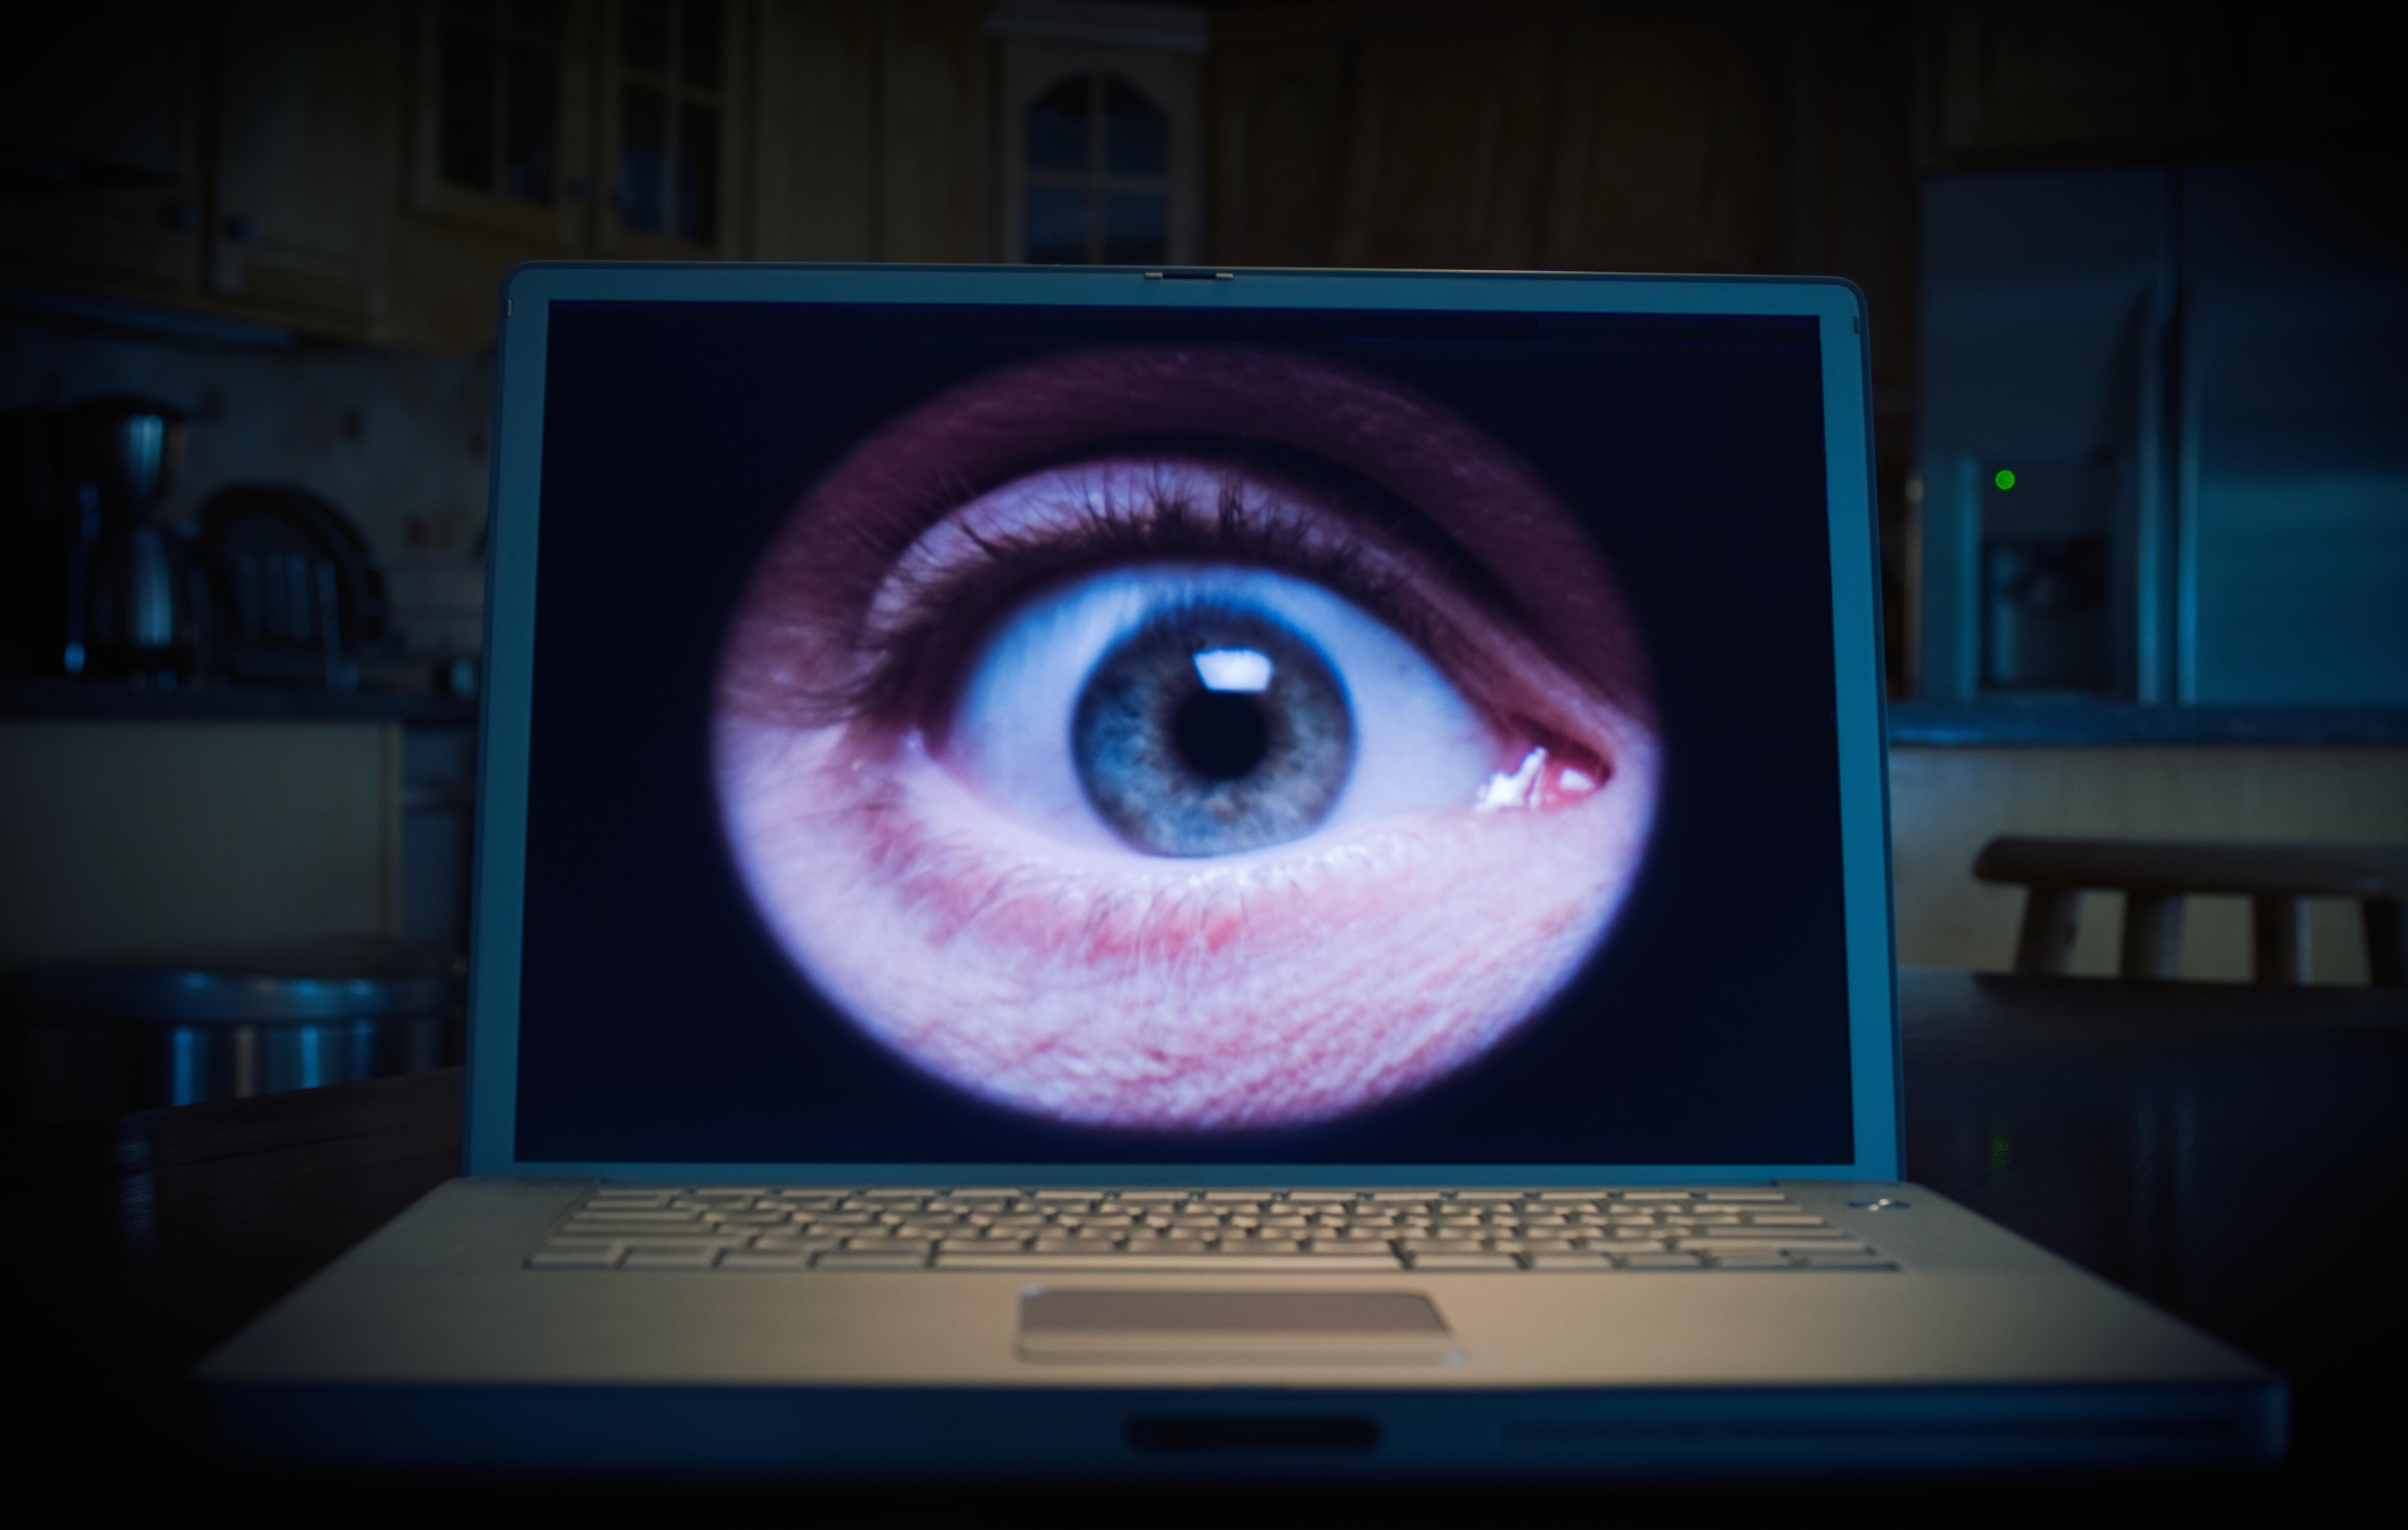 Man's eye on lap top computer